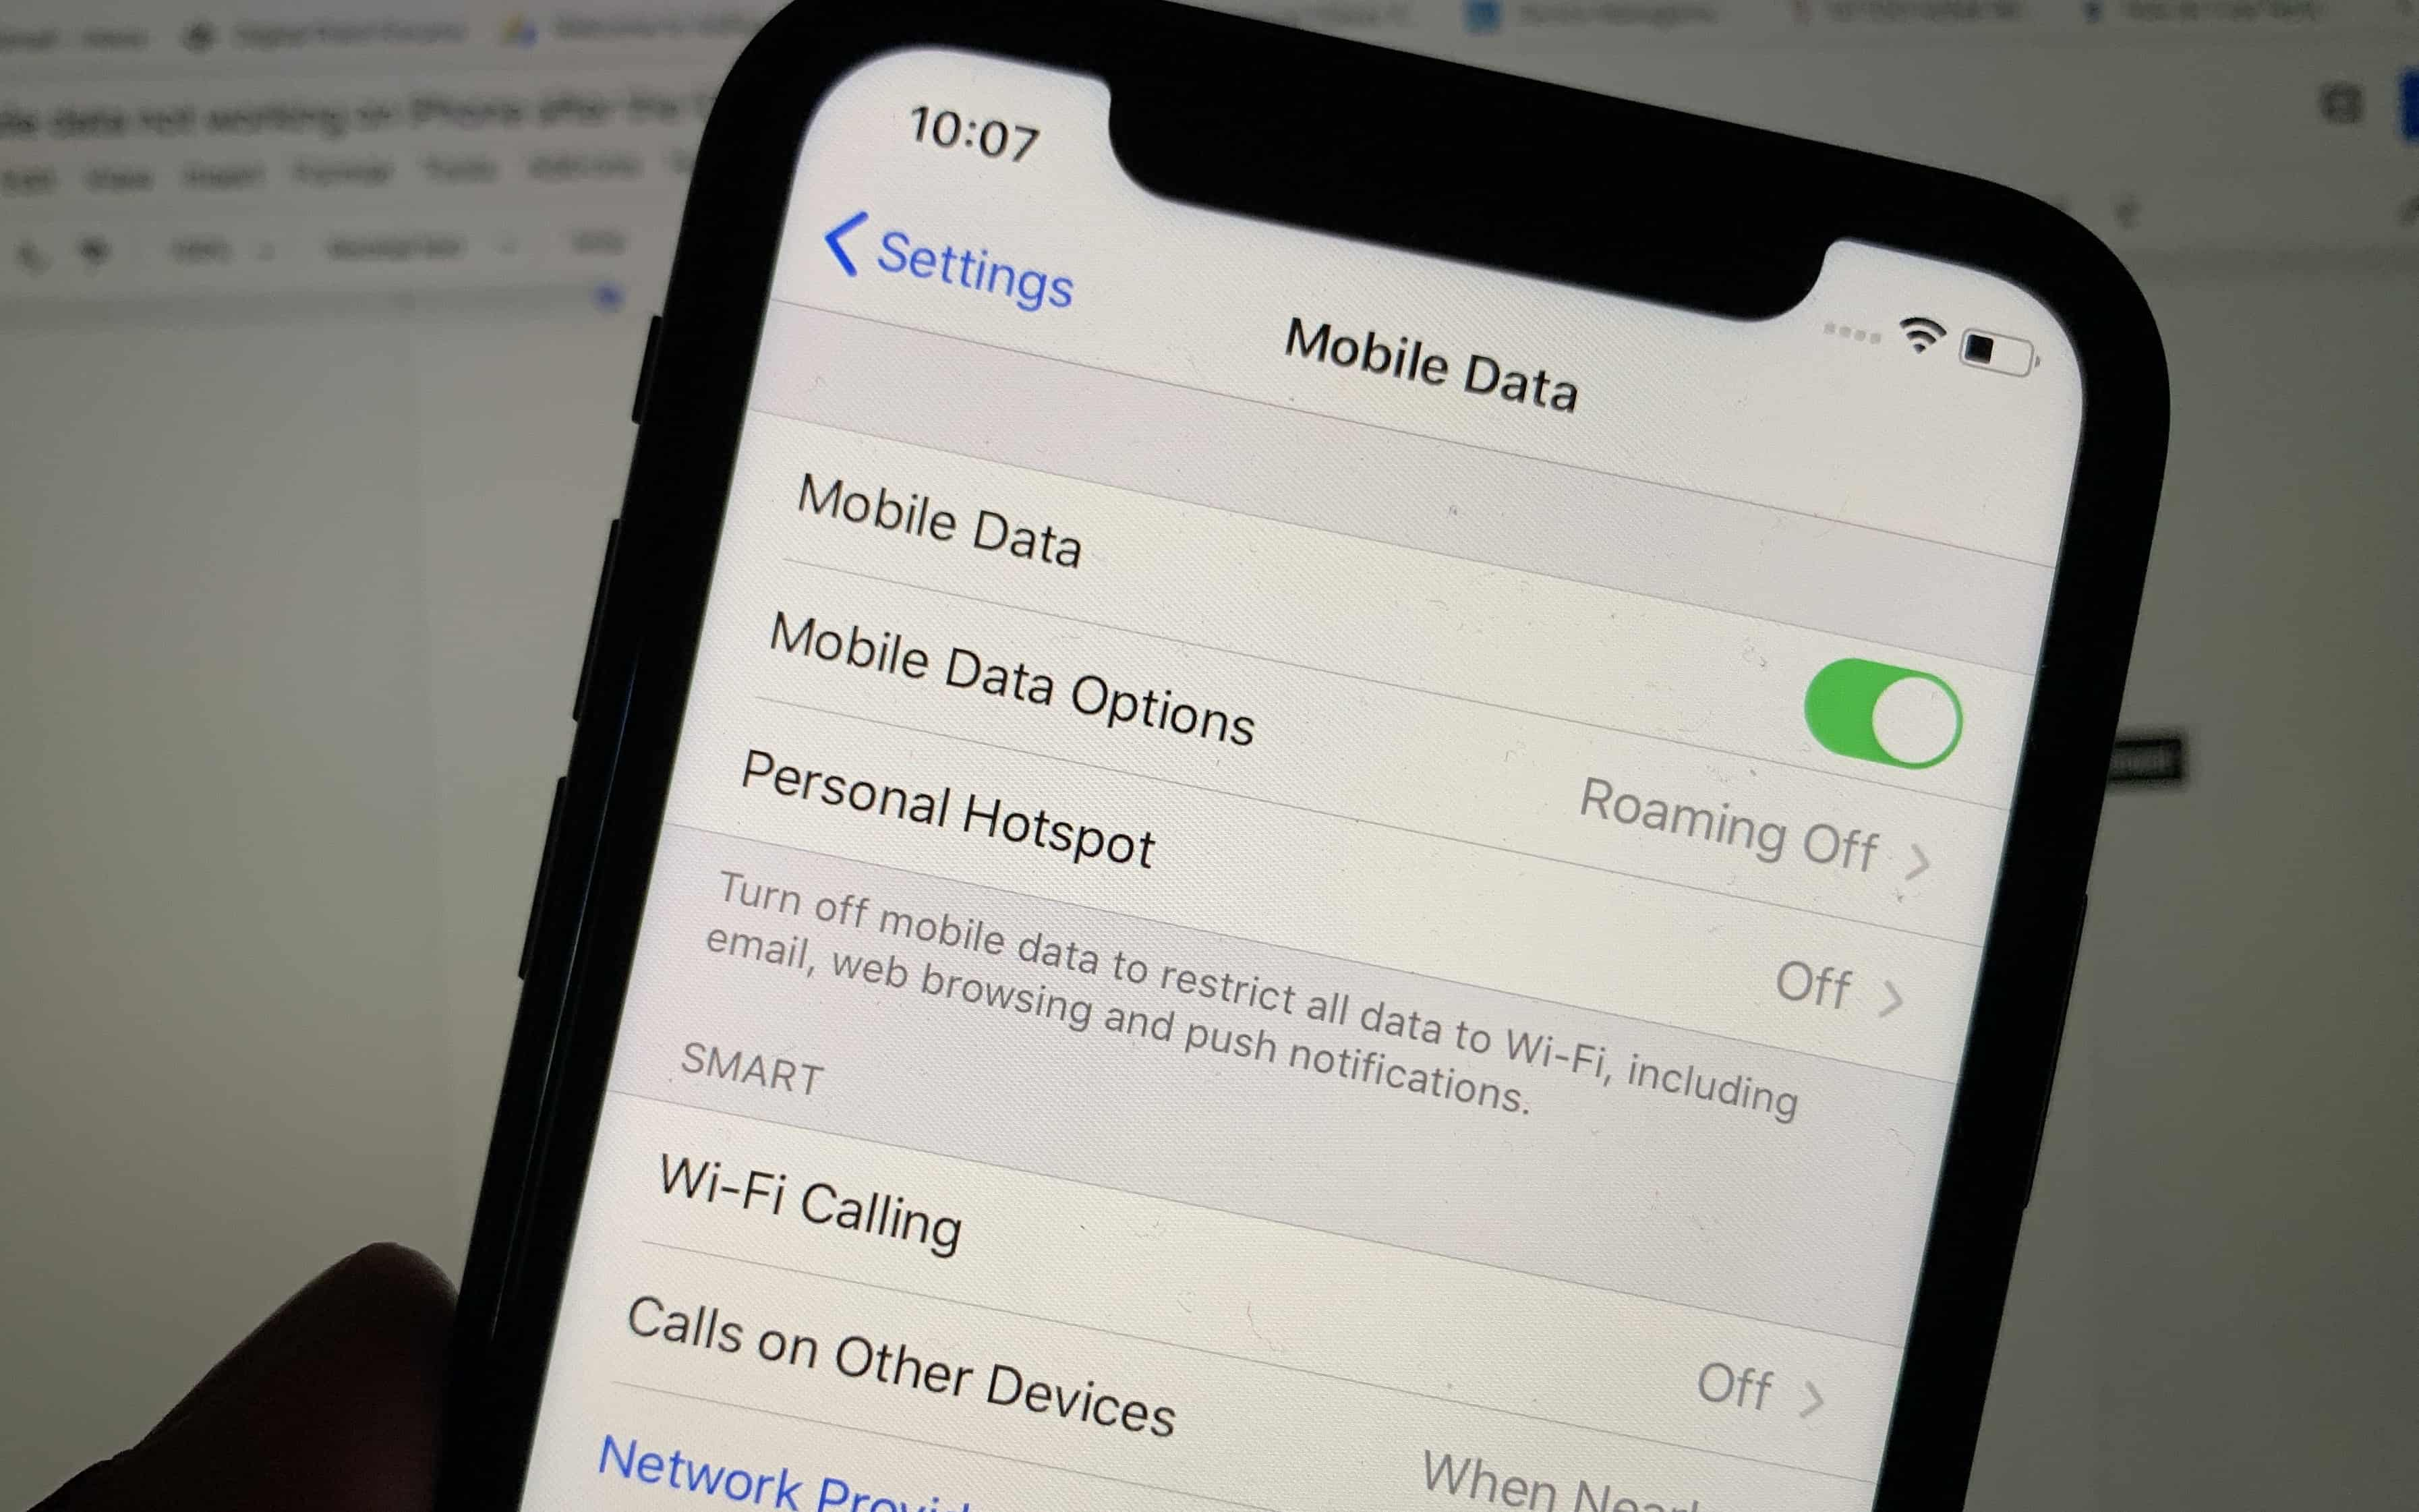 fix mobile data or cellular data that's not working on an iPhone